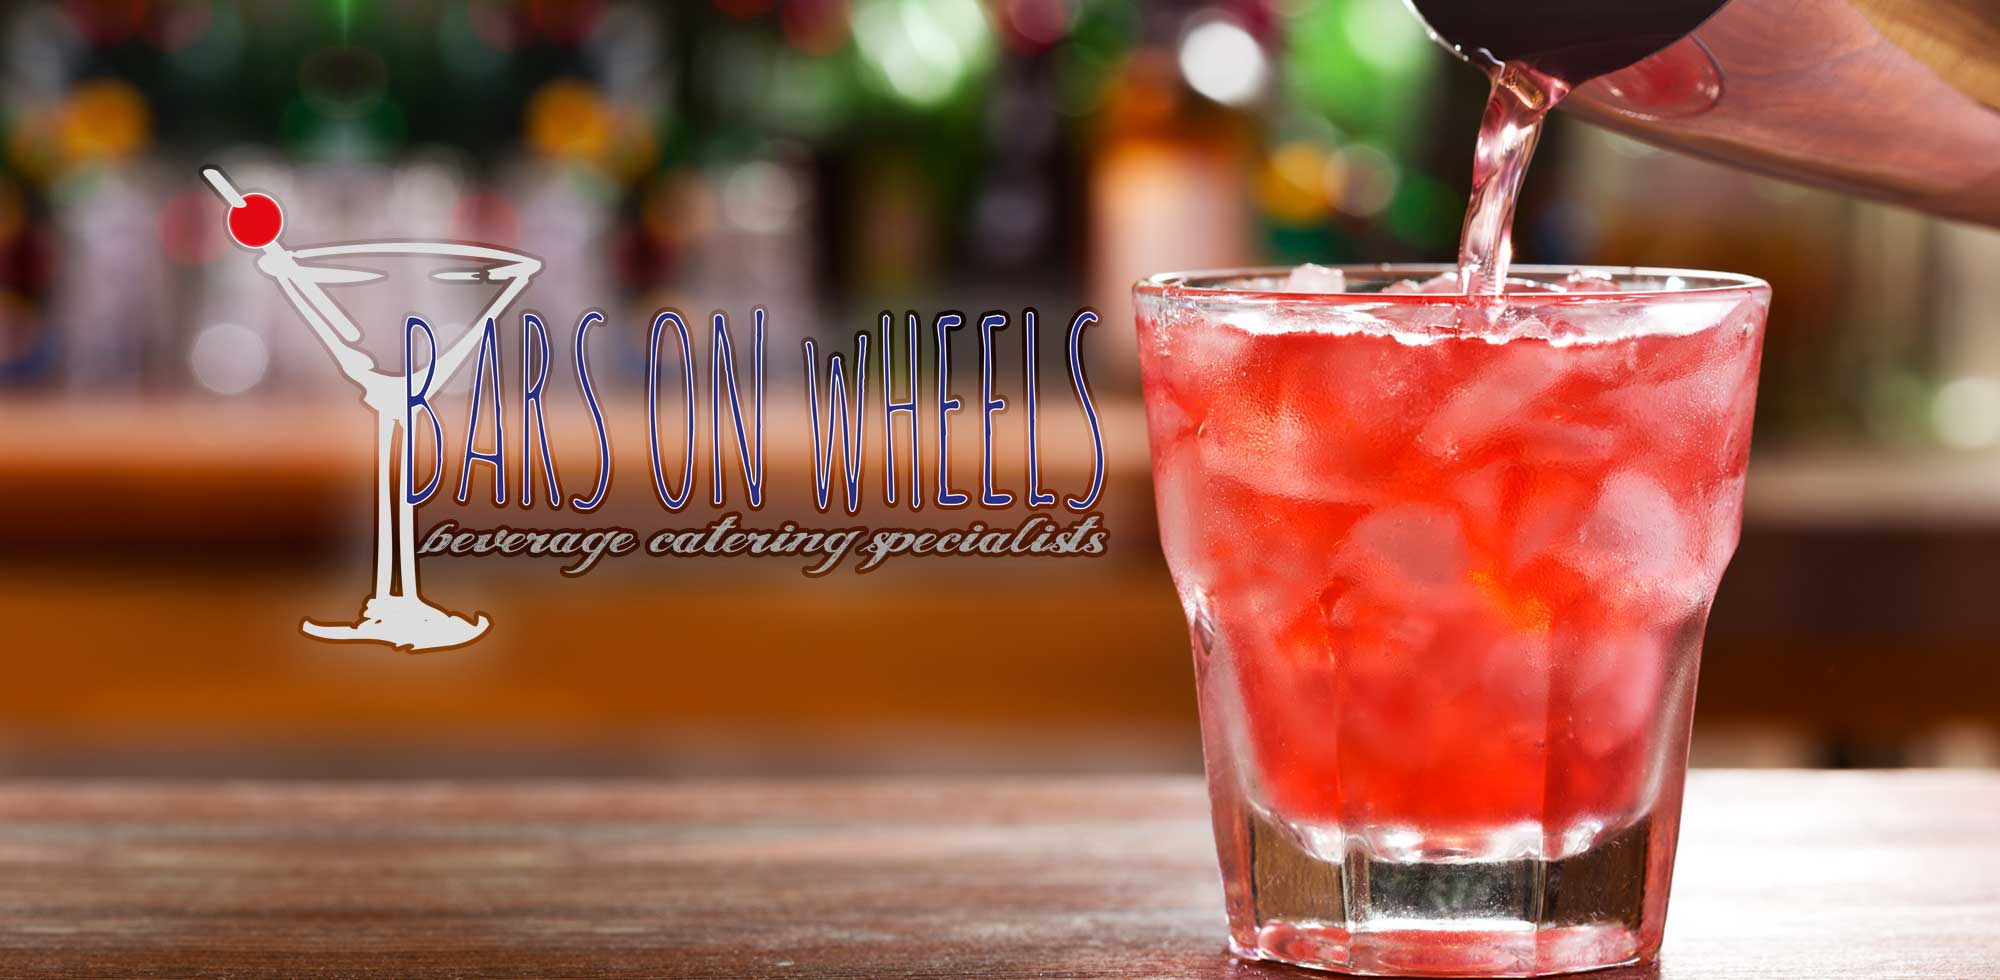 Bars On Wheels Beverage Catering Specialists